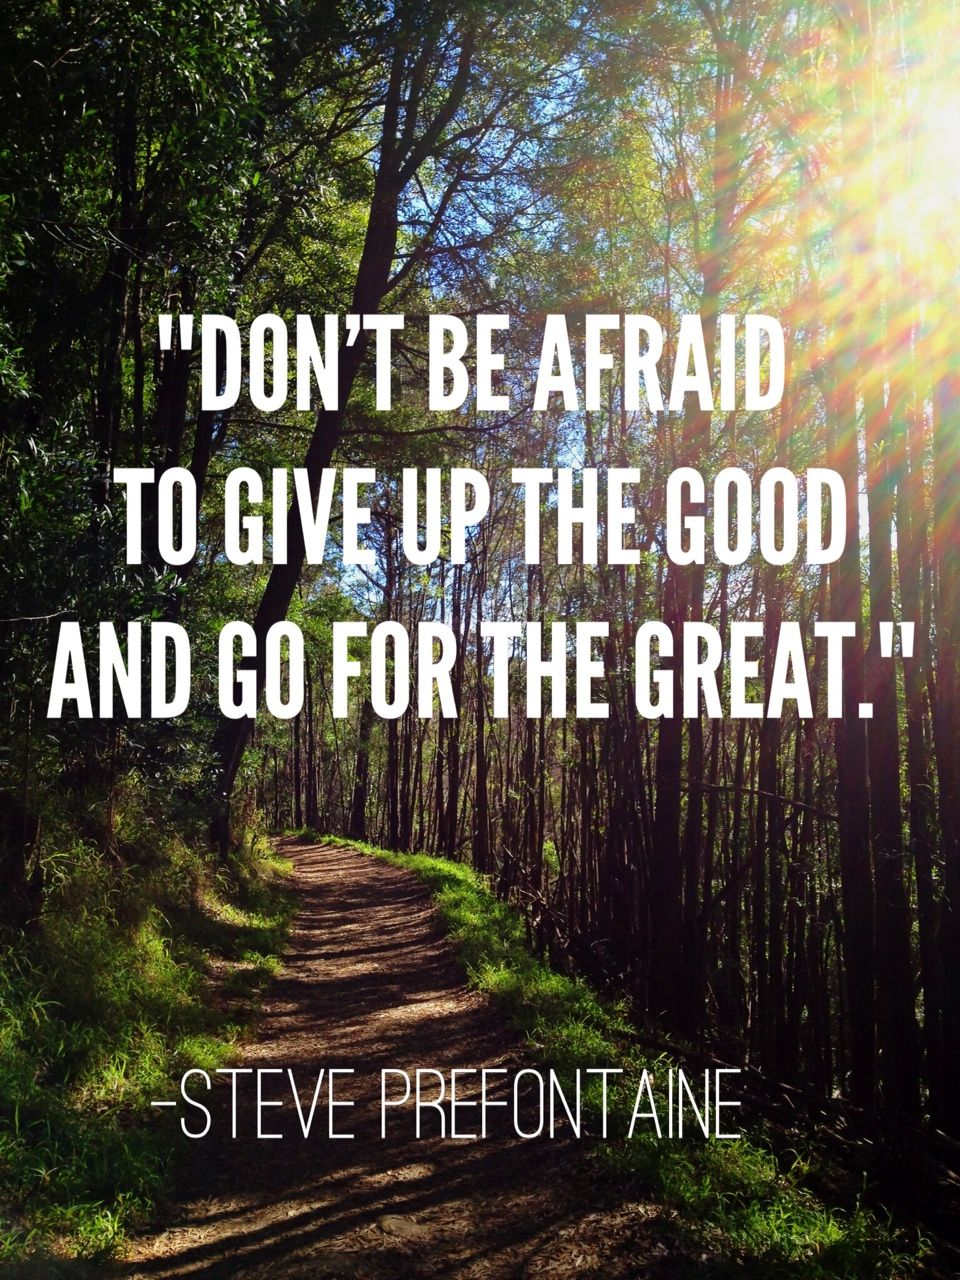 """Don't be afraid to give up the good and go for the great"".  -Steve Prefontaine #runningquotes"